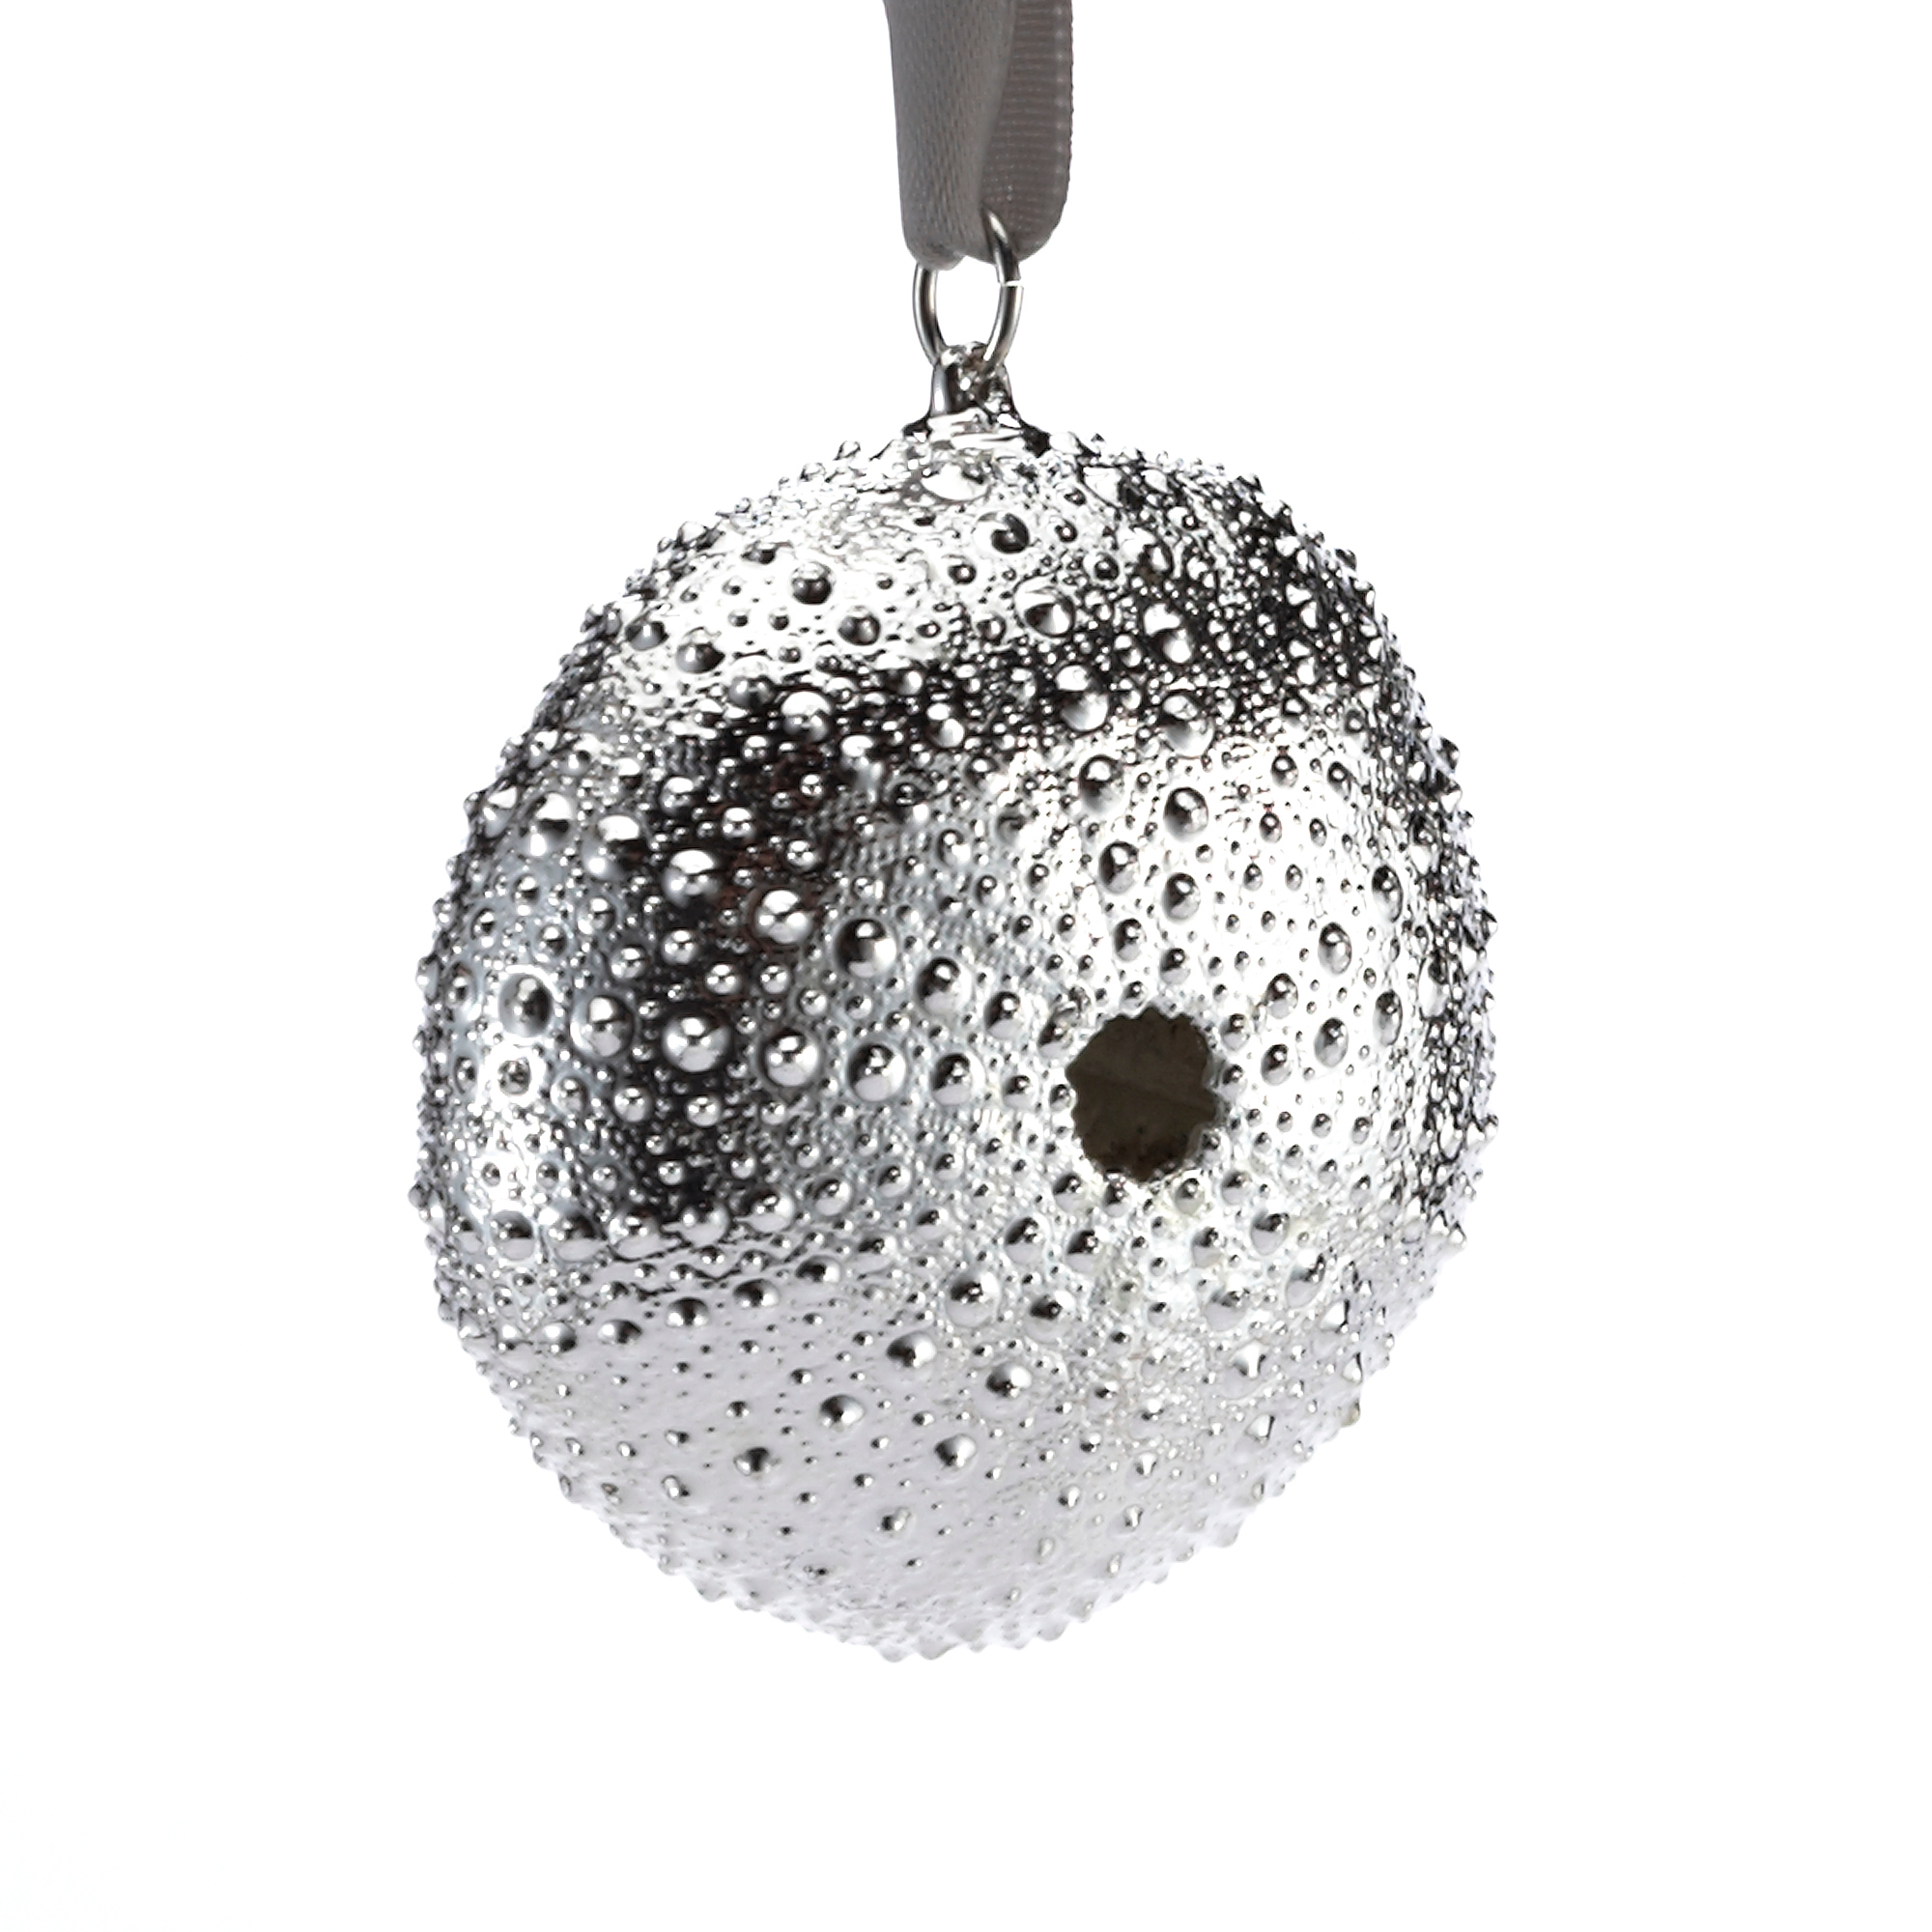 Still Life Sea Urchin Silver Christmas Ornament